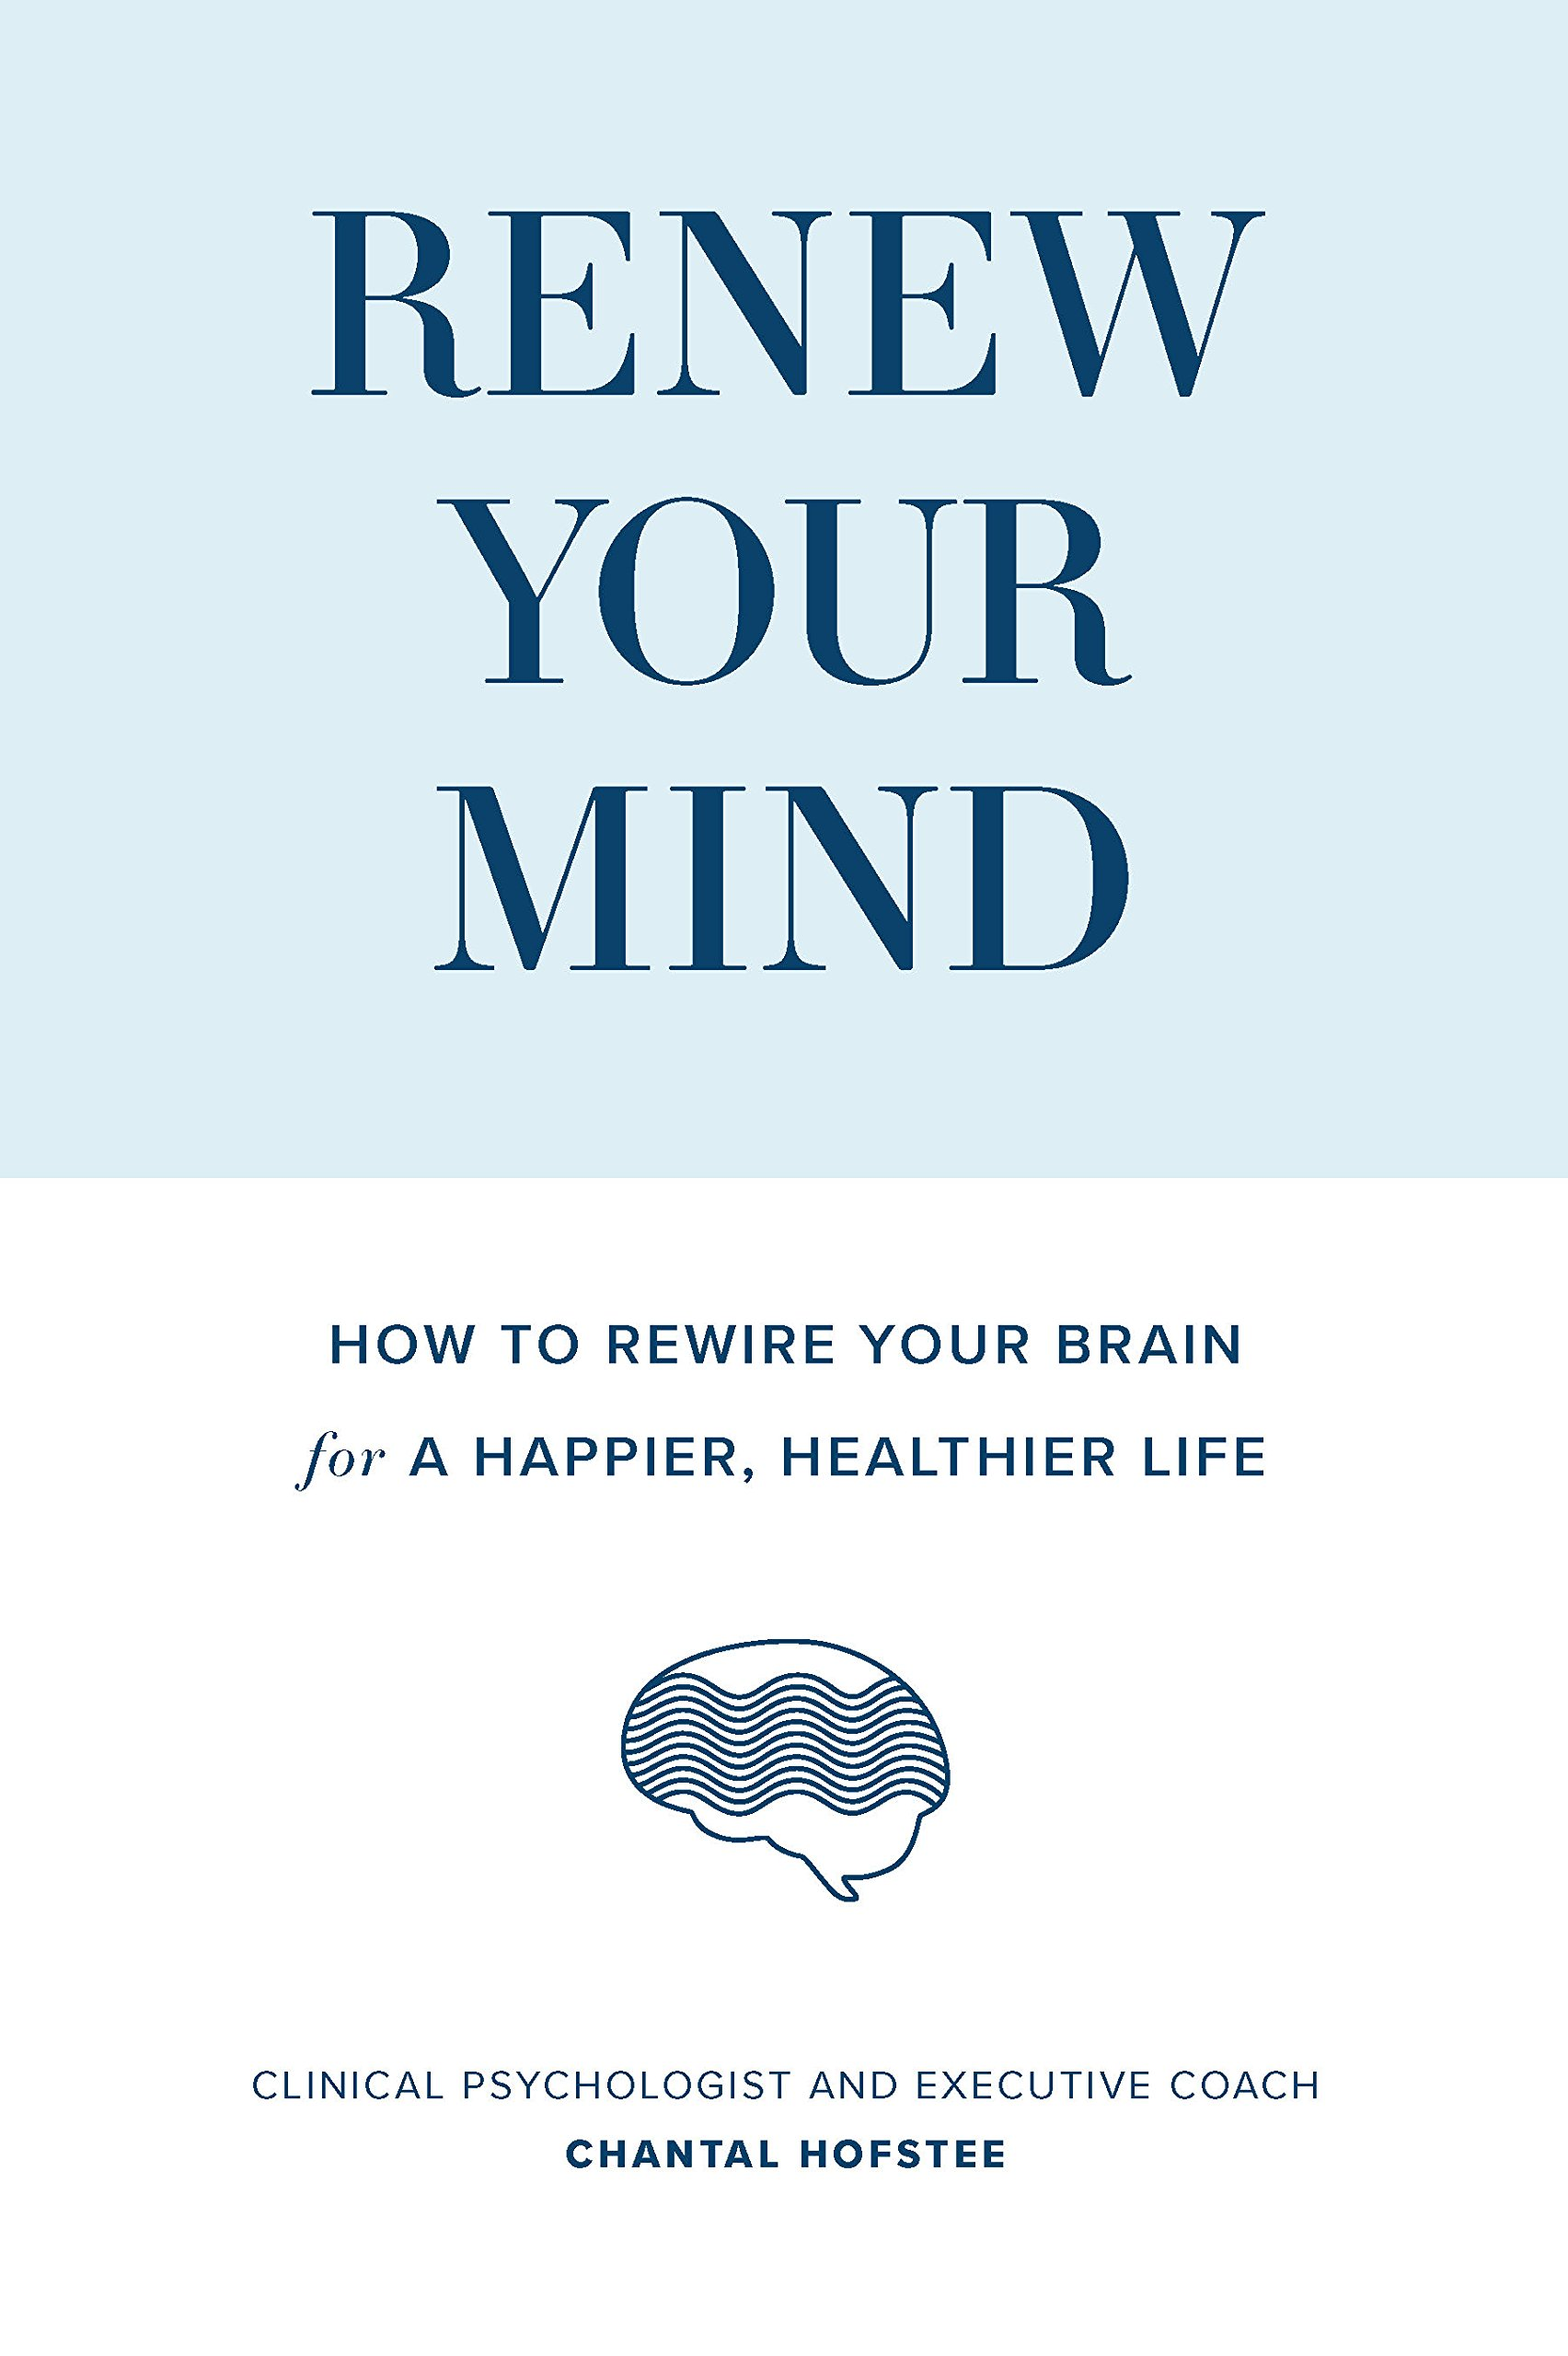 Renew Your Mind How To Rewire Brain For A Happier Healthier Much Does Rewiring House Cost Life Chantal Hofstee 9781925335866 Books